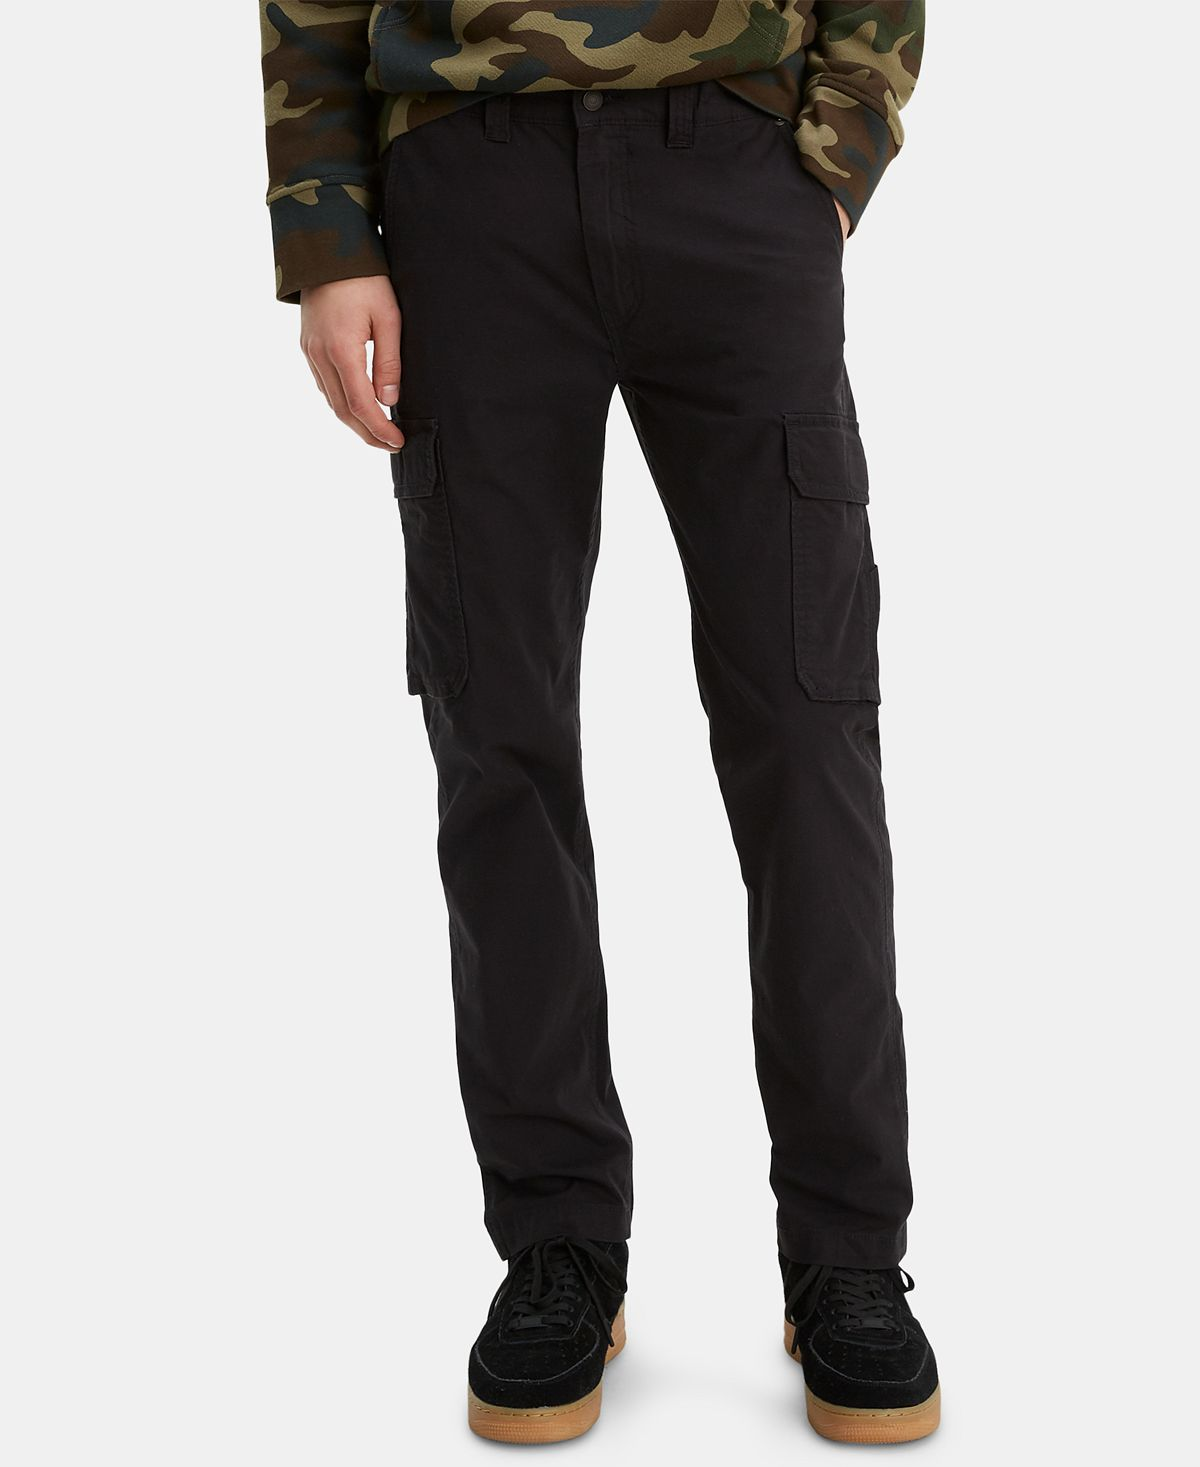 Levi's 502 Aviator Tapered Cargo Pants Caviar